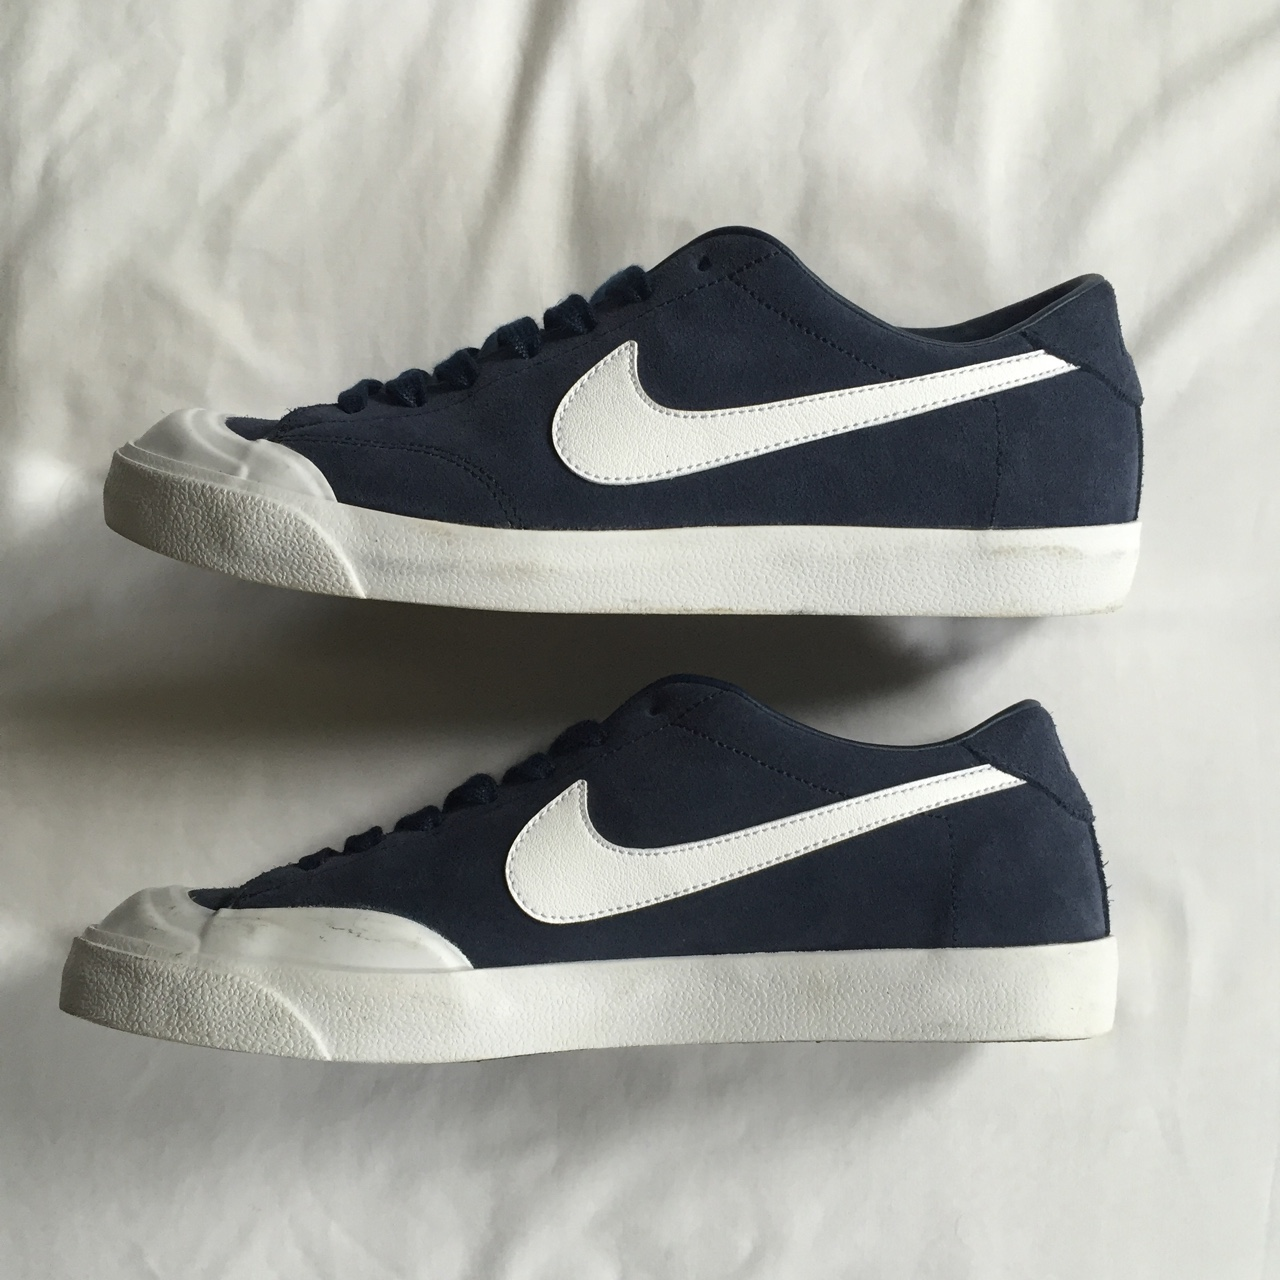 Nike SB Ck1 Zoom All Court skate shoes